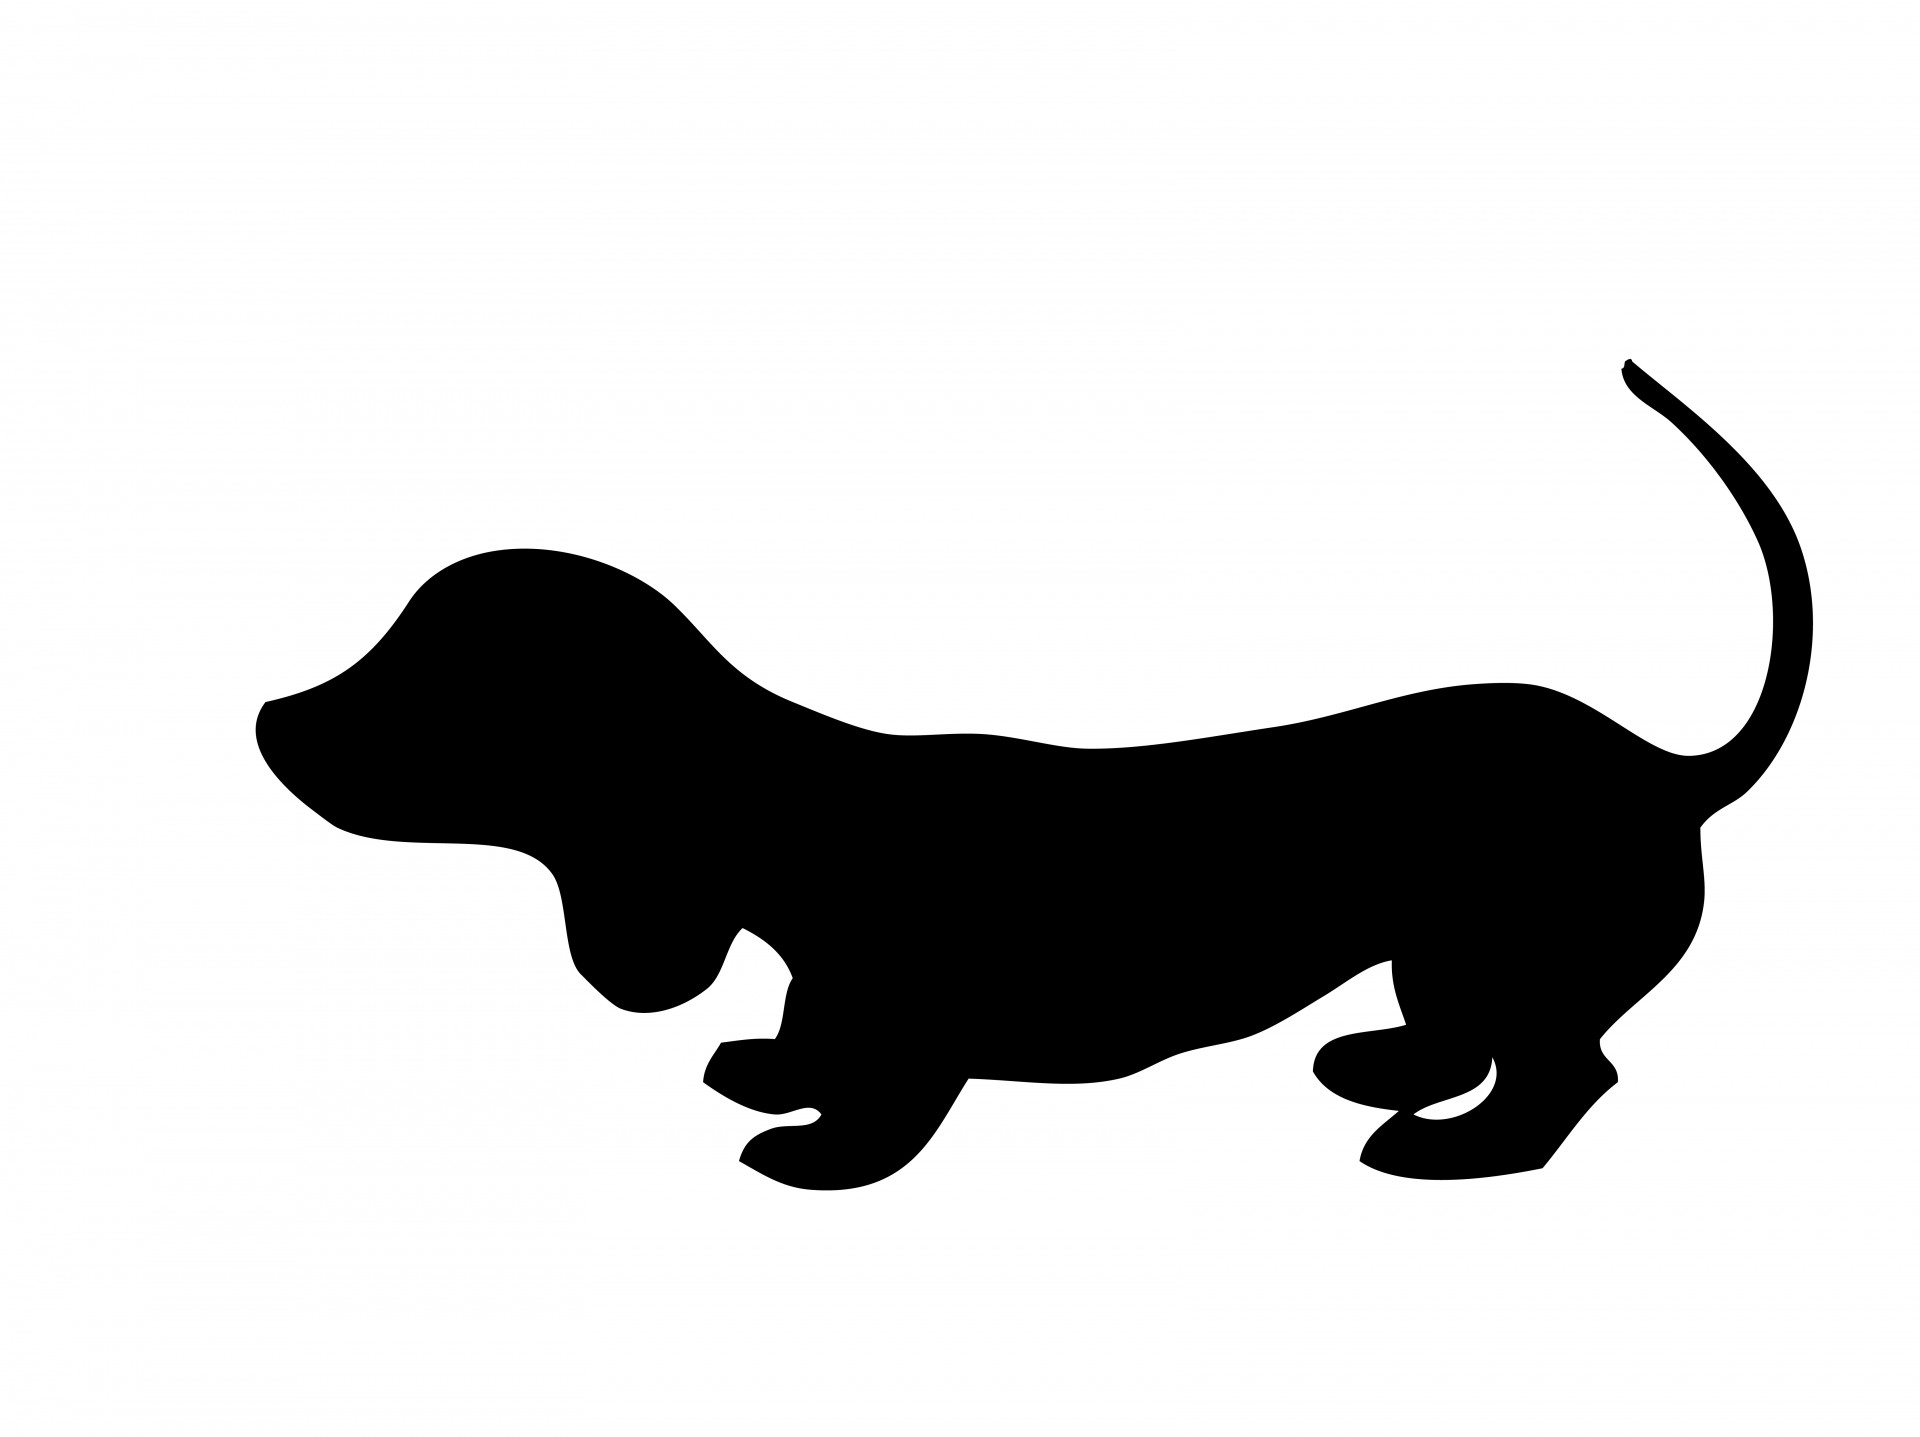 1920x1437 Dog Silhouette Free Stock Photo